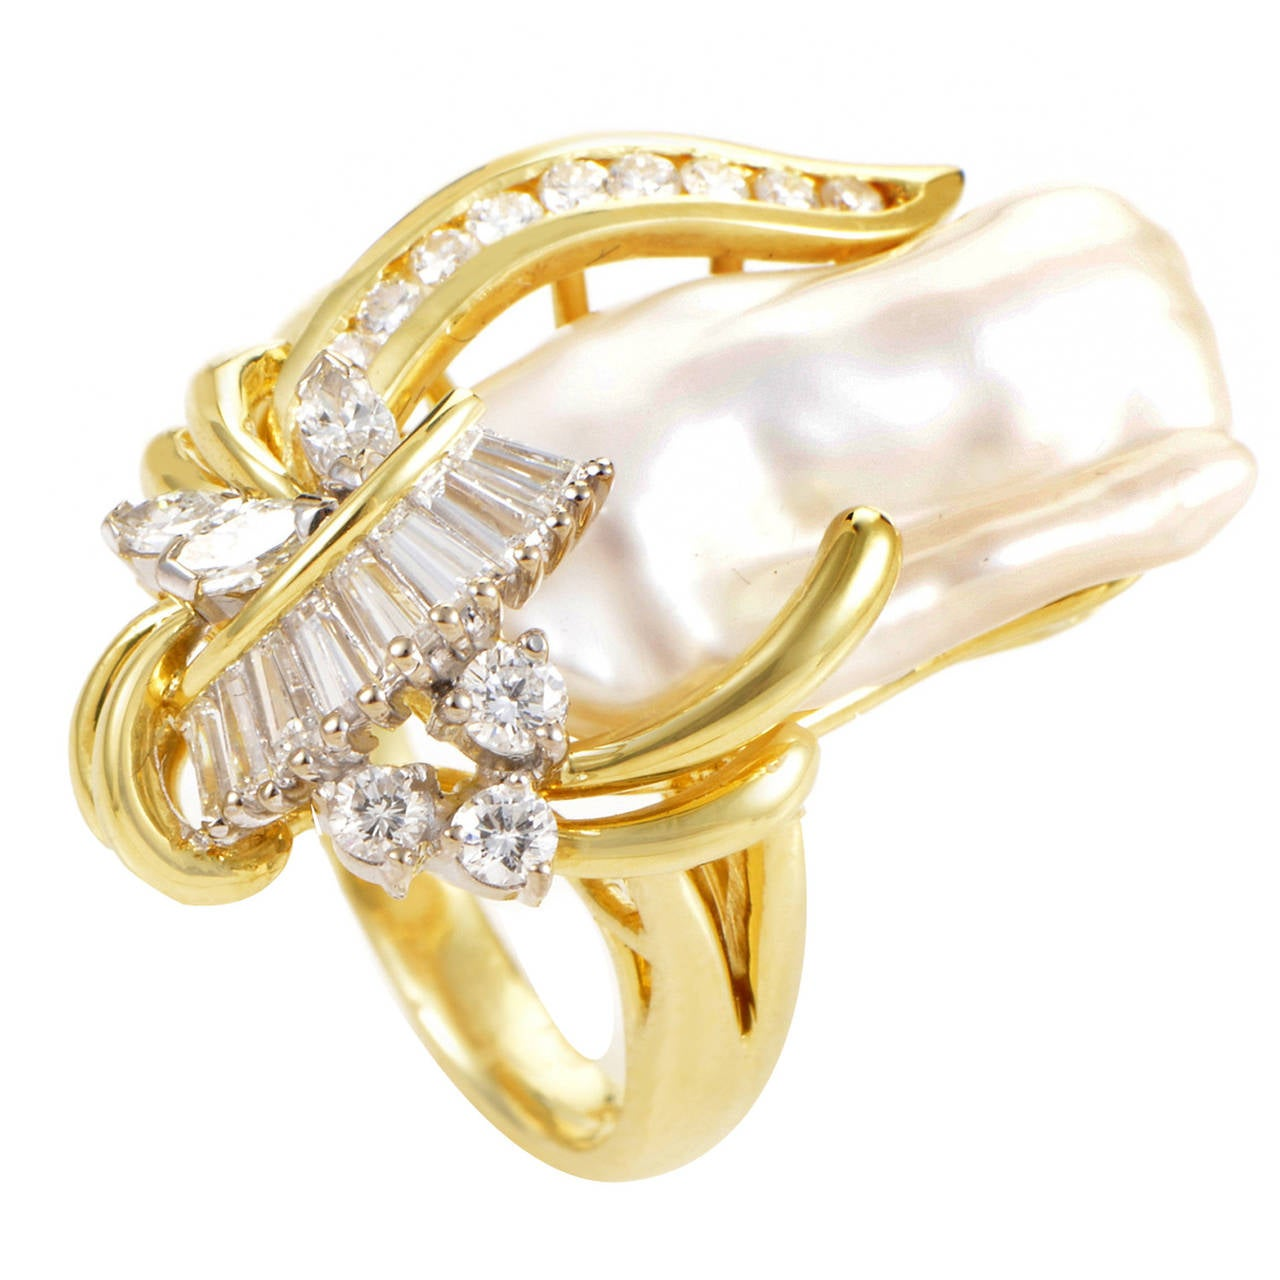 Baroque Pearl Diamond Gold Cluster Ring At 1stdibs. Assassin's Creed Rings. $4 Million Engagement Rings. Halo Rings. Pink Pearl Engagement Rings. 40 Carat Engagement Rings. Completely Wedding Rings. Rash Wedding Rings. Cut Diamond Engagement Rings